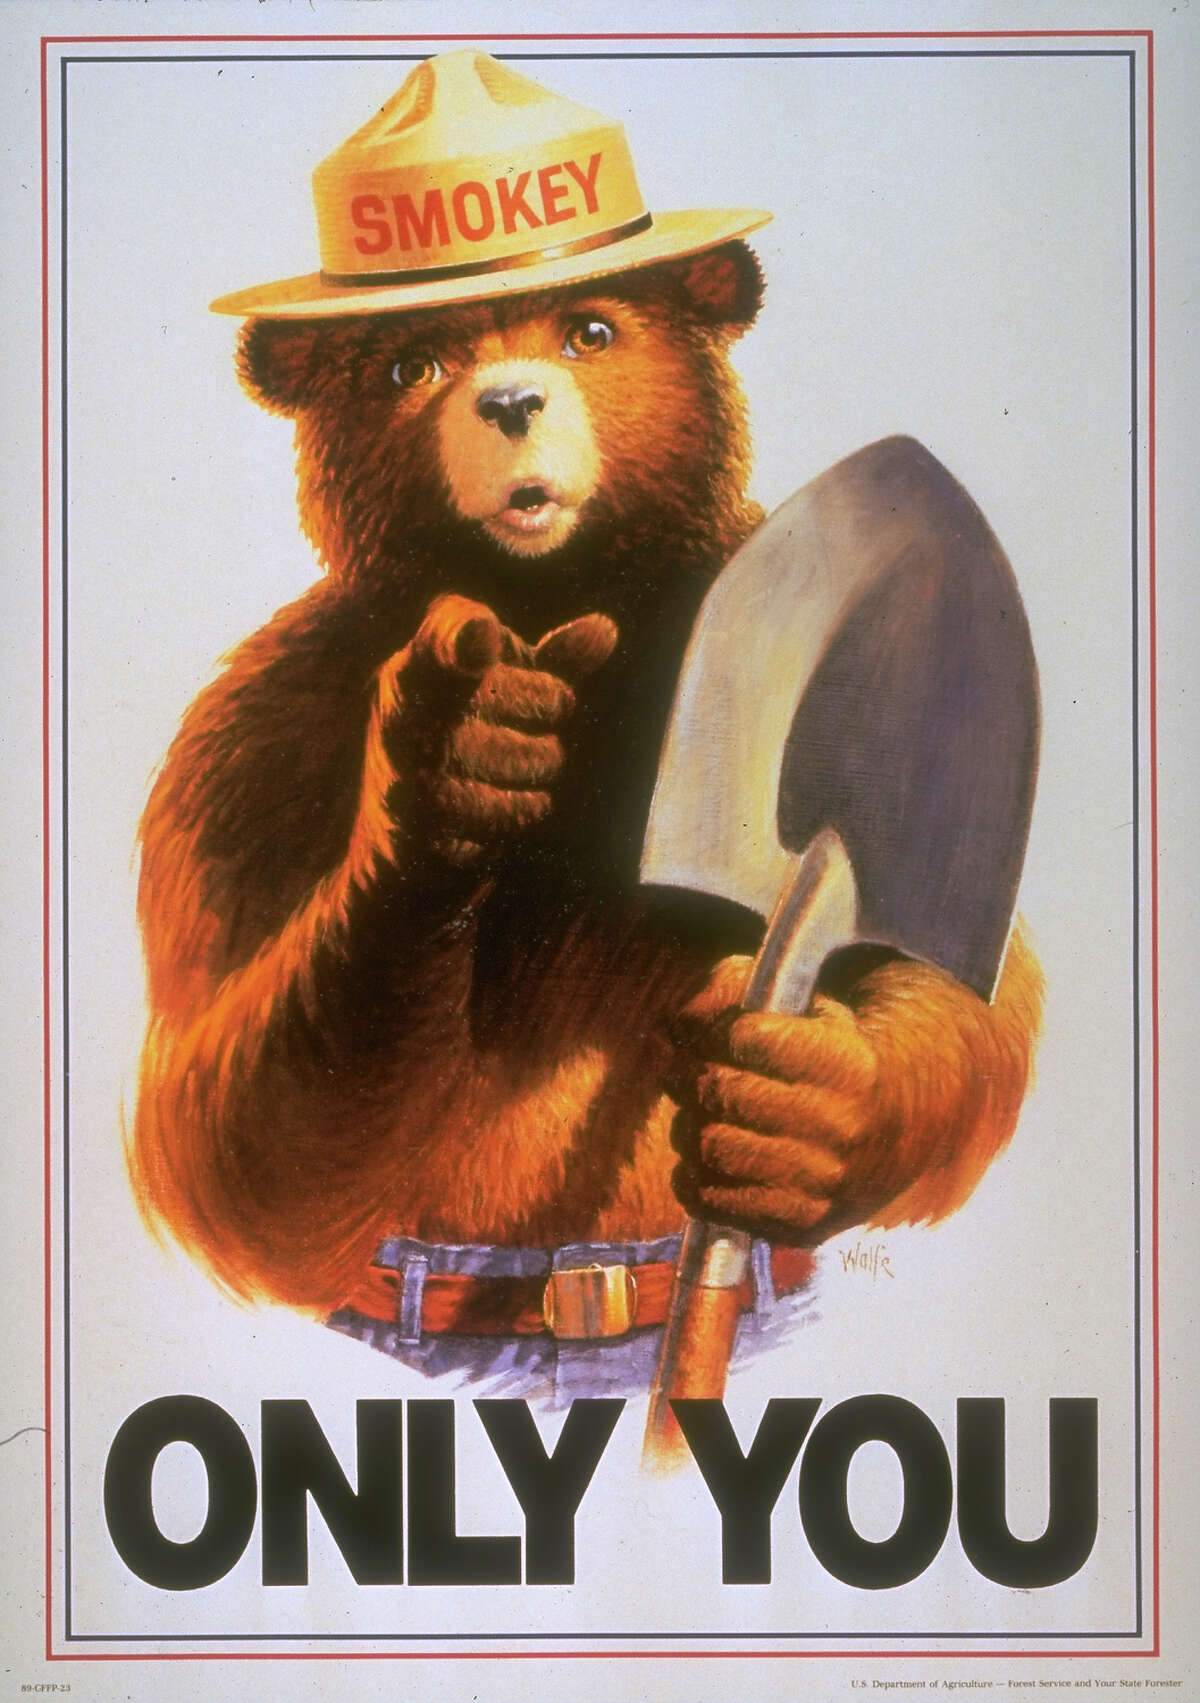 The fire prevention campaign featuring Smokey Bear has been running since the 1940s. It received a living symbol with the rescue of a bear cub from a New Mexico forest fire in 1950.